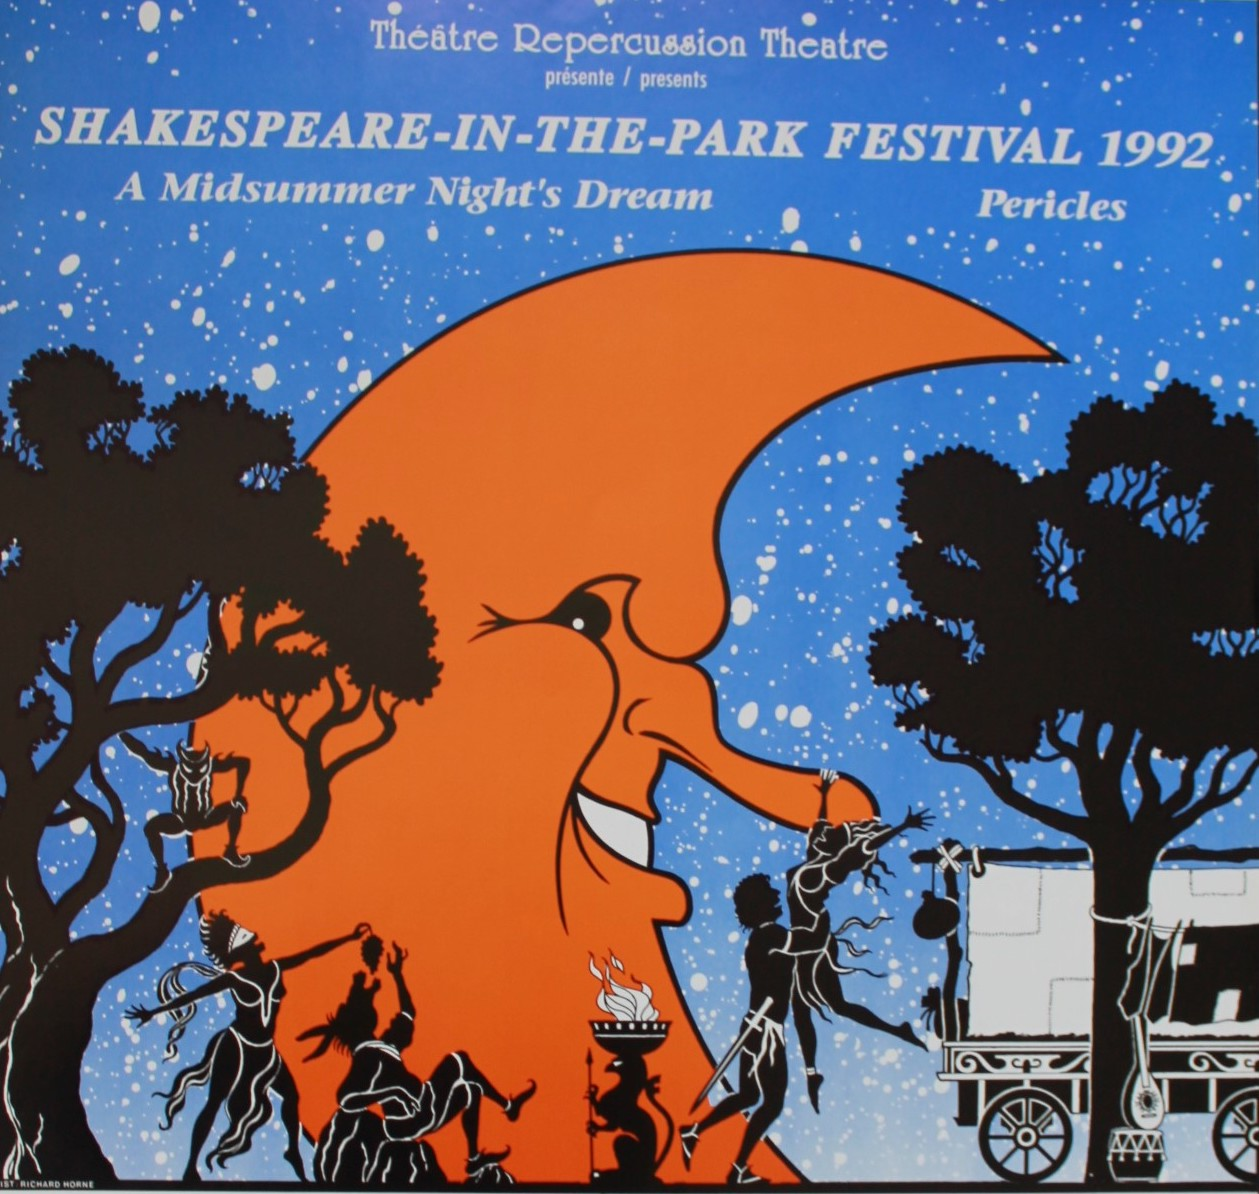 1992 Poster